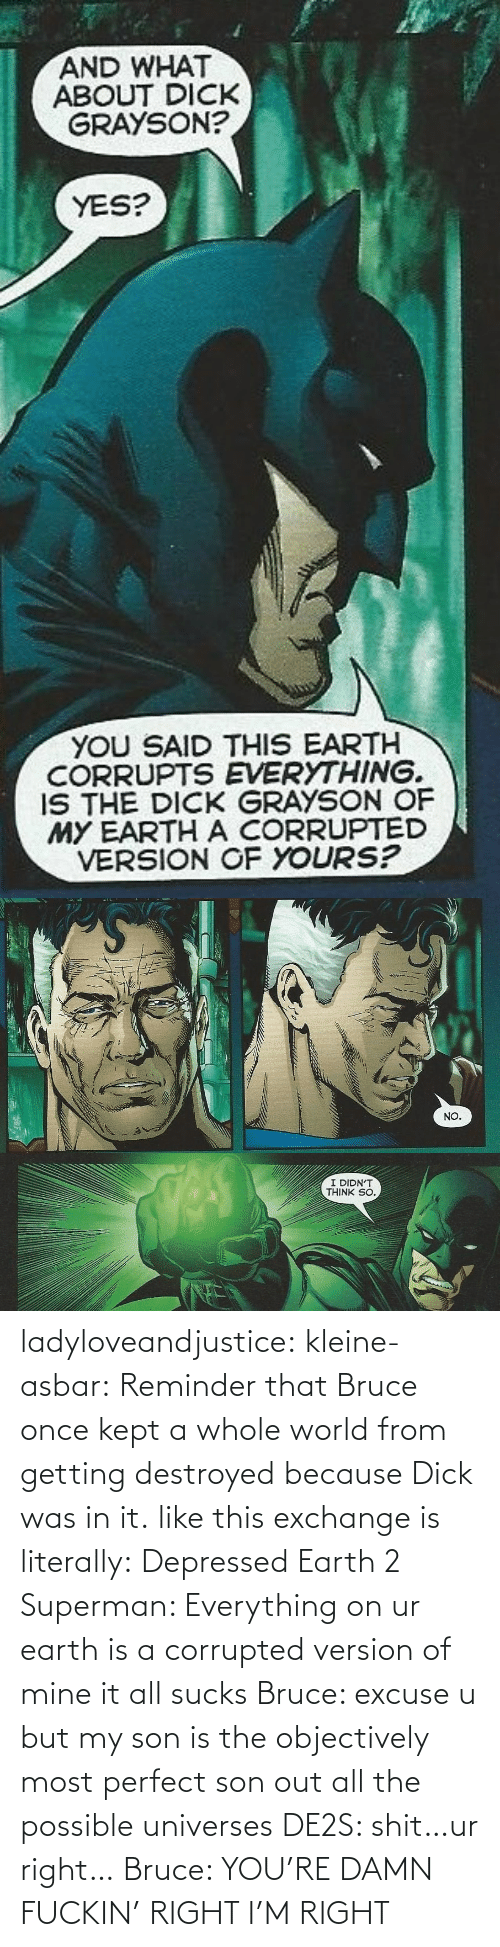 Of Mine: ladyloveandjustice:  kleine-asbar: Reminder that Bruce once kept a whole world from getting destroyed because Dick was in it. like this exchange is literally: Depressed Earth 2 Superman: Everything on ur earth is a corrupted version of mine it all sucks Bruce: excuse u but my son is the objectively most perfect son out all the possible universes DE2S: shit…ur right… Bruce: YOU'RE DAMN FUCKIN' RIGHT I'M RIGHT